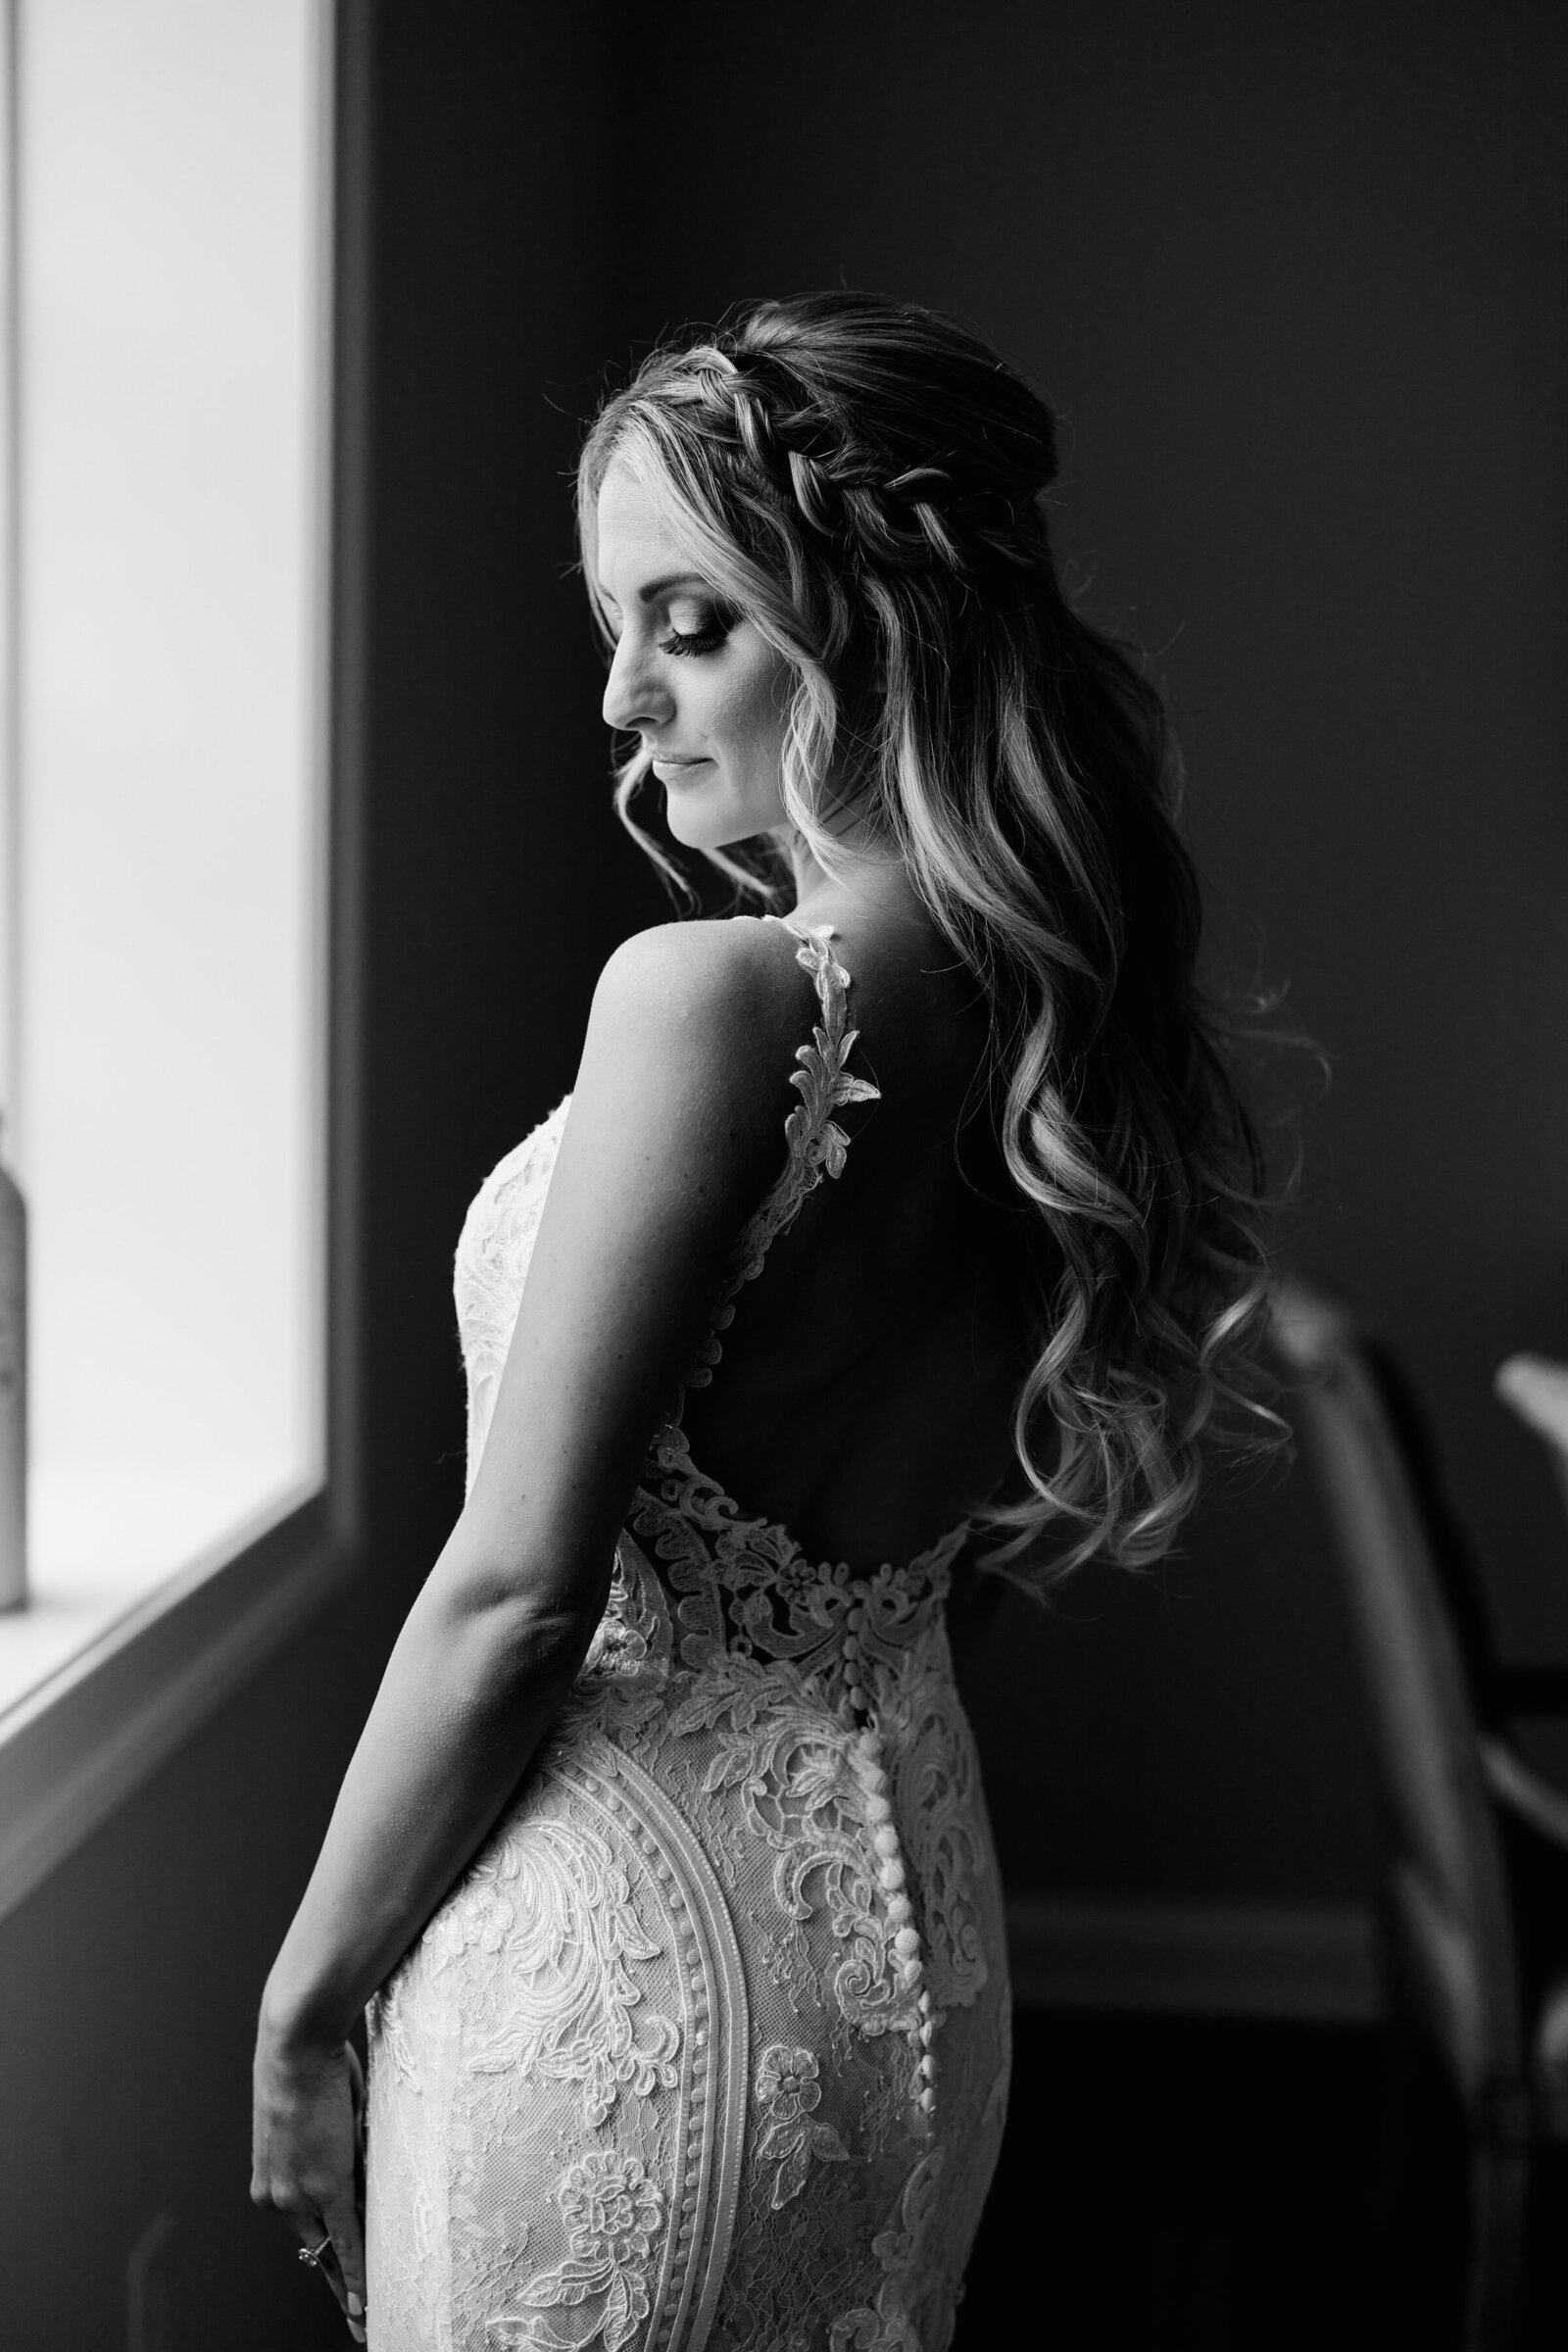 black and white image of bride lace dress at window